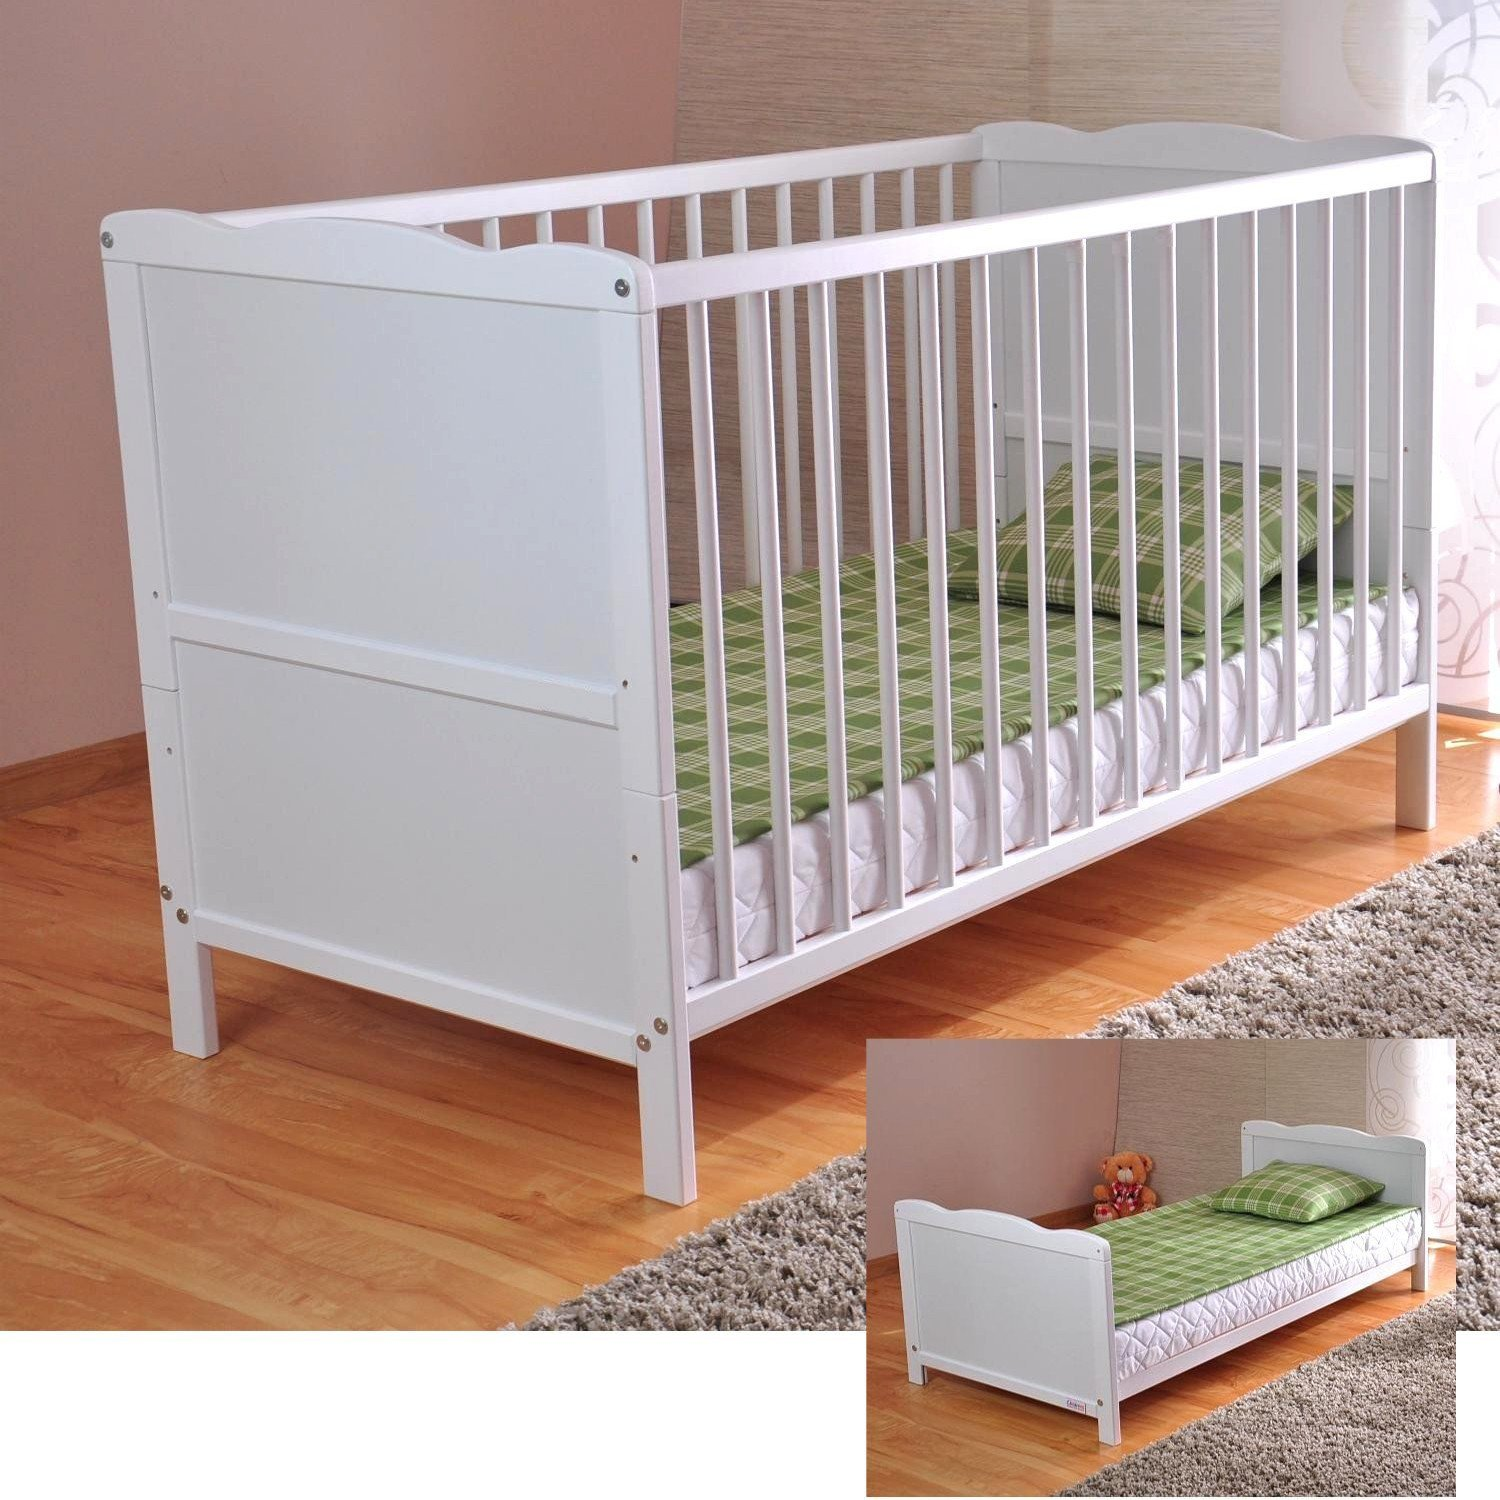 Free UK Delivery ✔ White Solid Wood Baby Cot Bed & Deluxe Foam Mattress Converts into a Junior Bed ✔ 3 Position ✔ Water Repellent Mattress Liner Extreme Furniture AX120